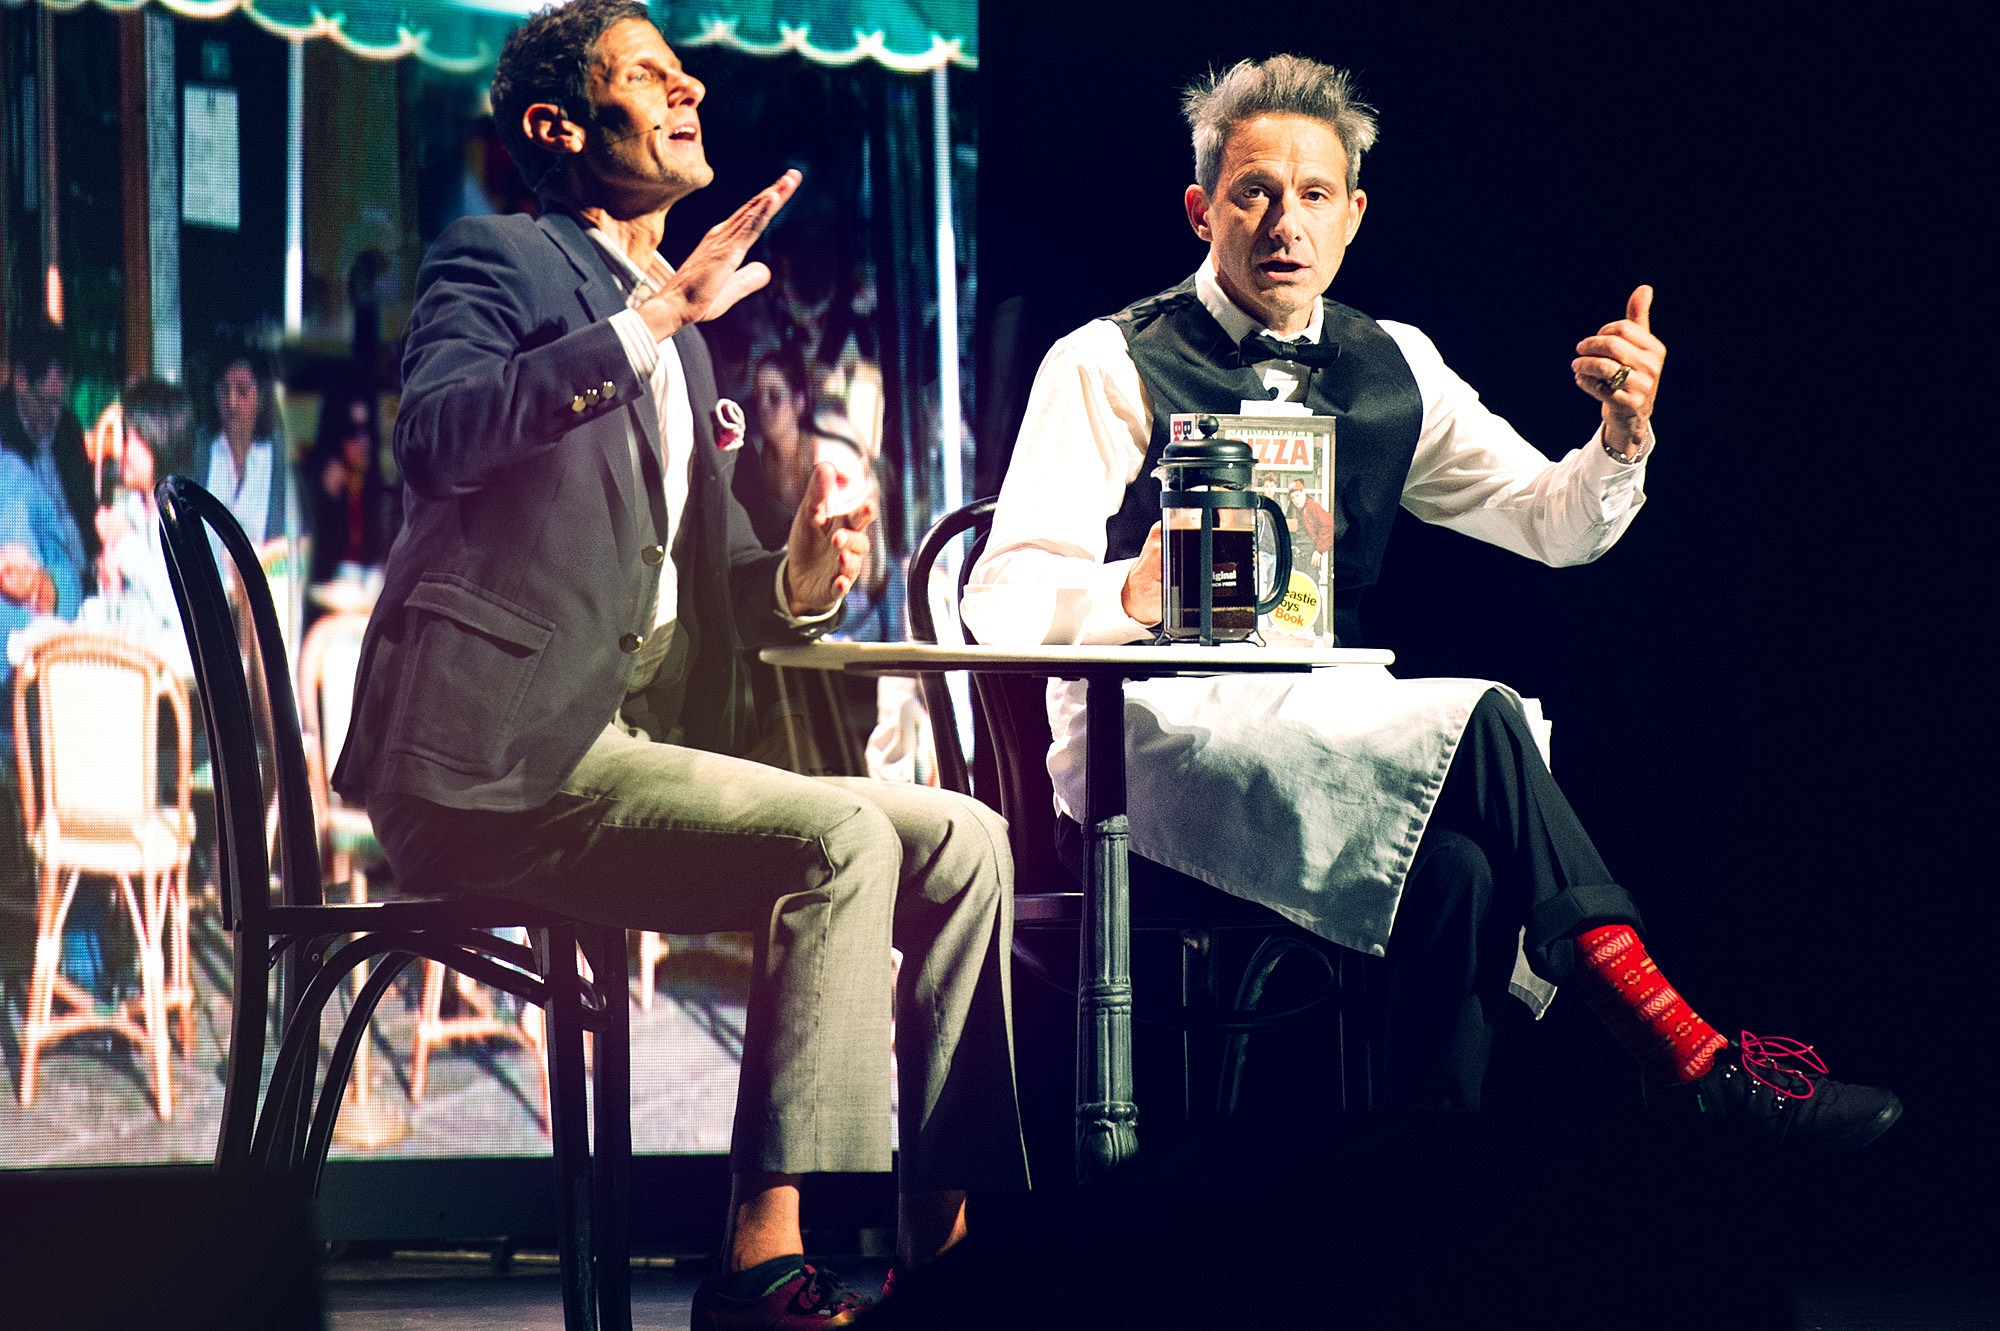 Beastie Boys Book Tour hit Brooklyn at Kings Theatre (pics)